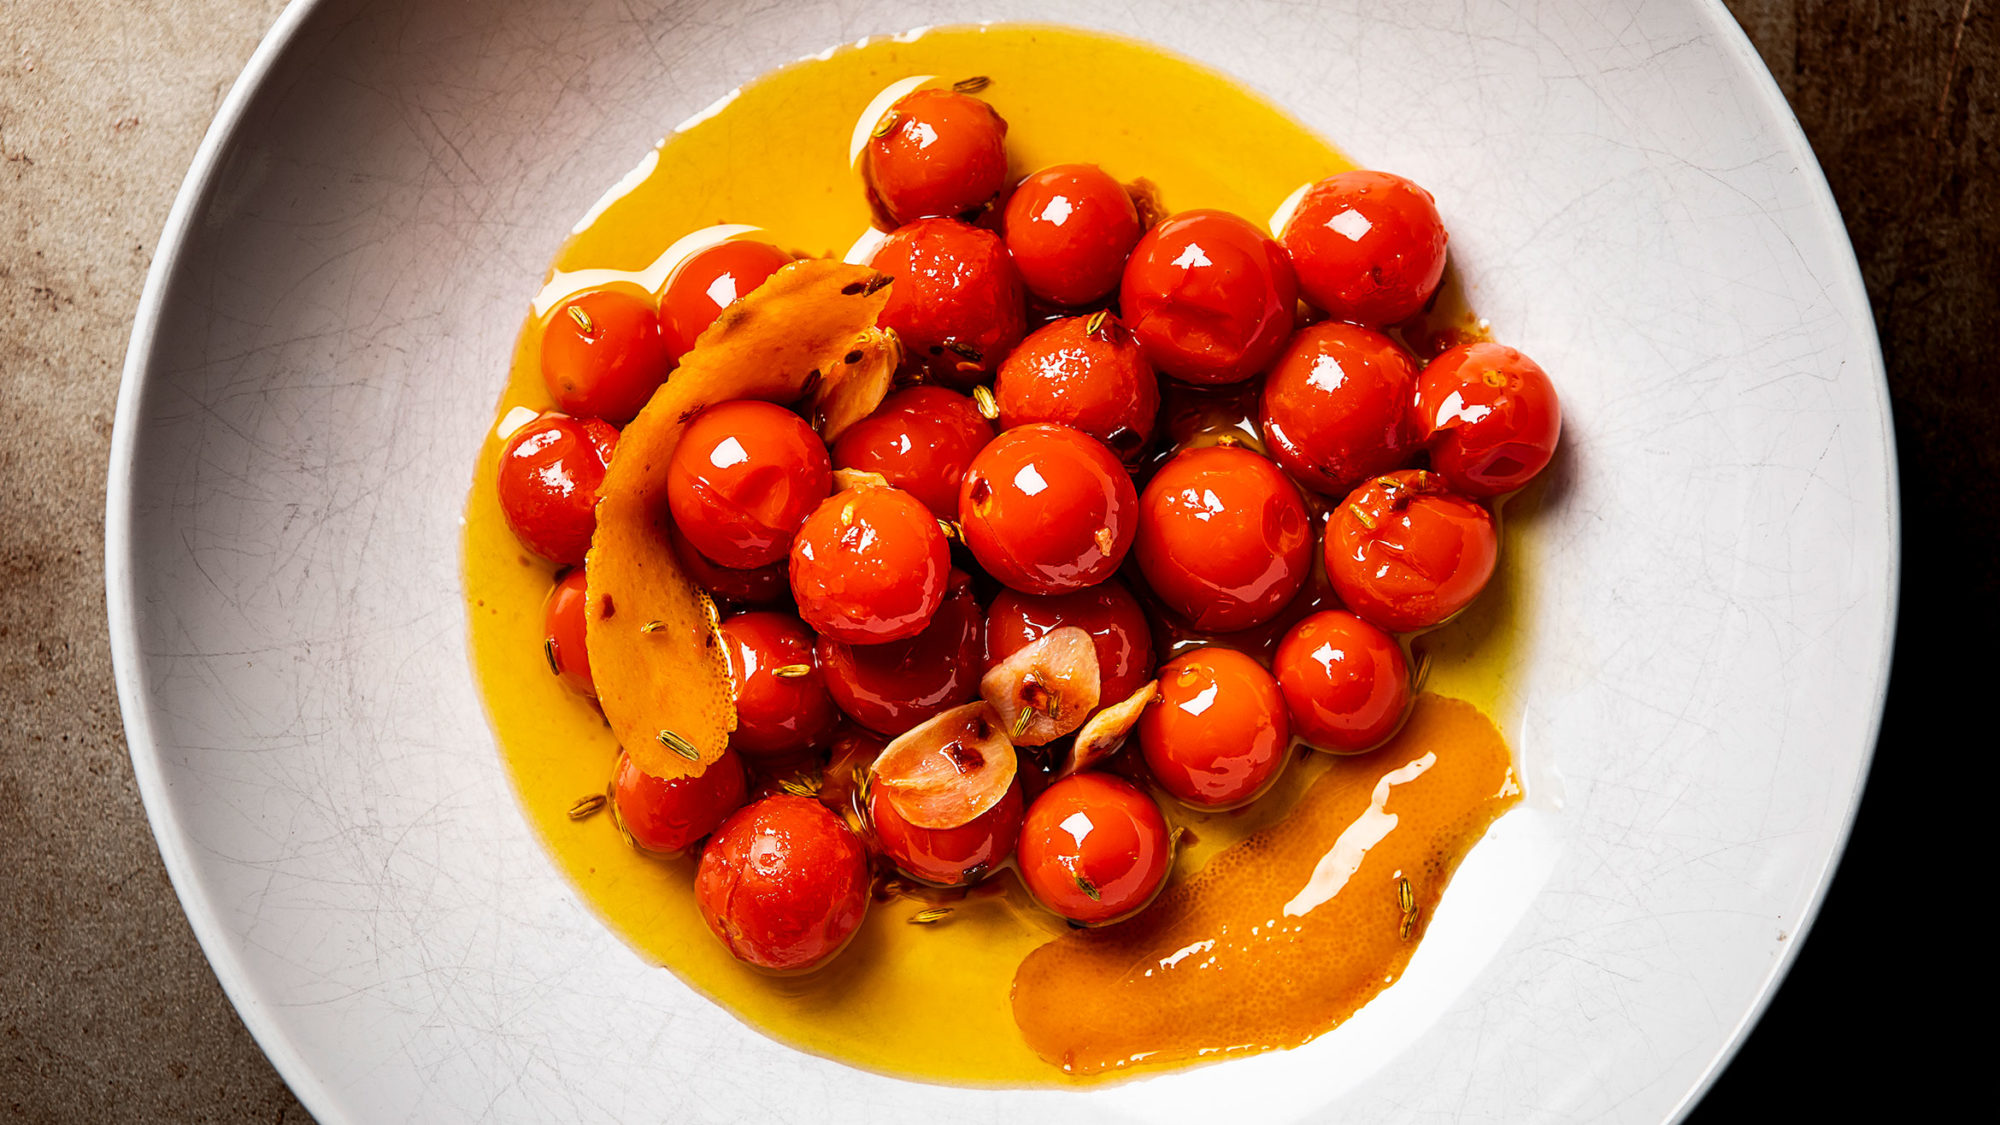 Article-Canned-Mutti-Cherry-Tomatoes-Marinade-recipe